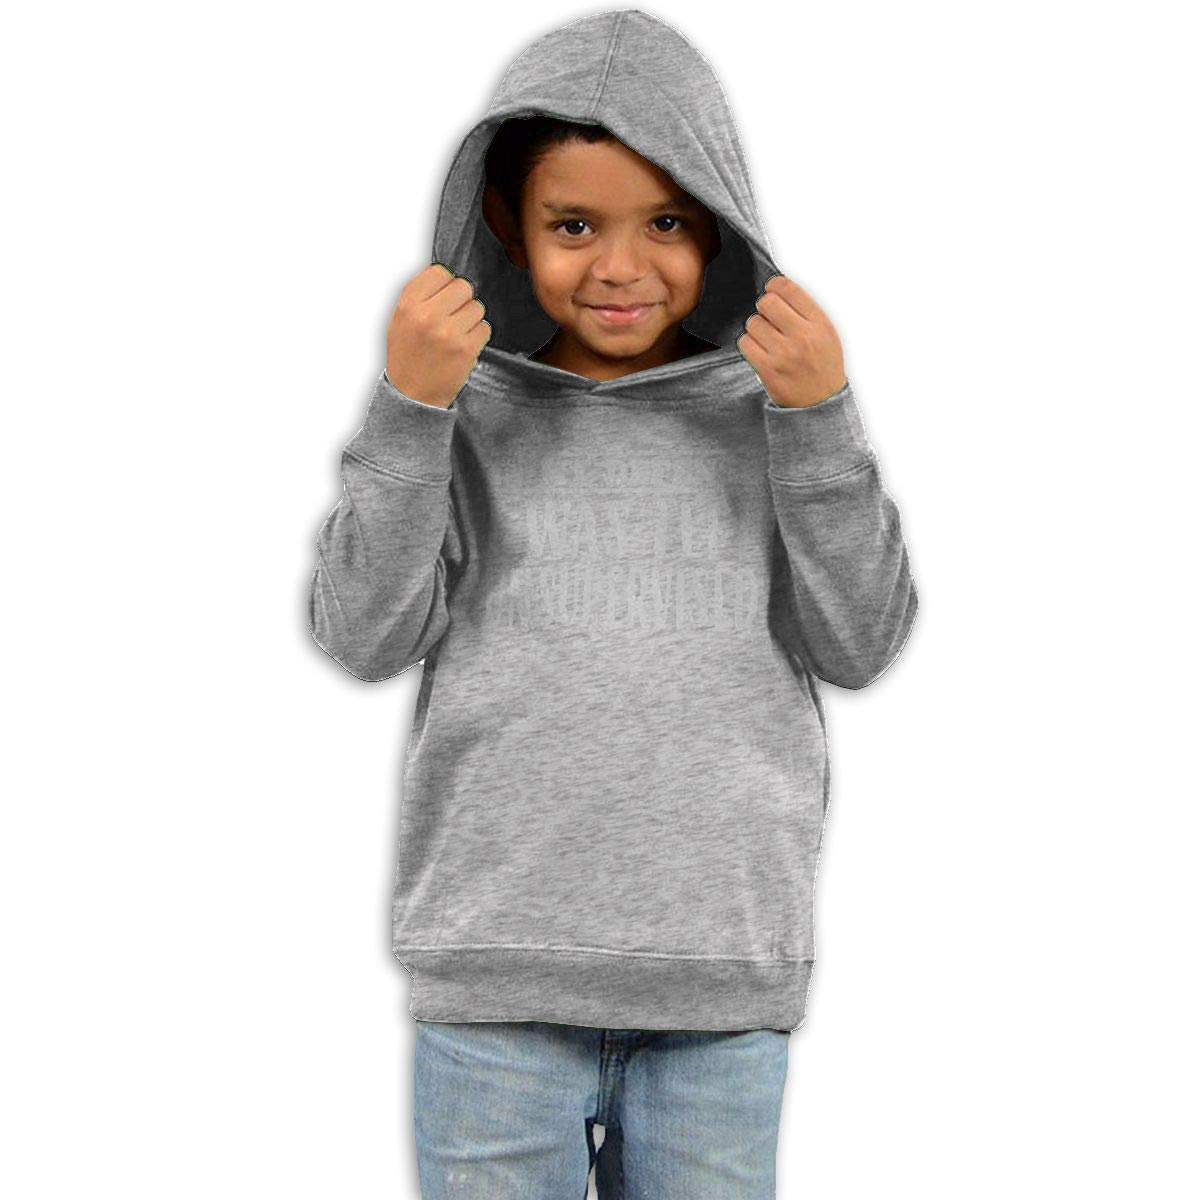 Childrens Hooded Sweater in My Defense I was Left Unsupervised1 Kids Sweater Black